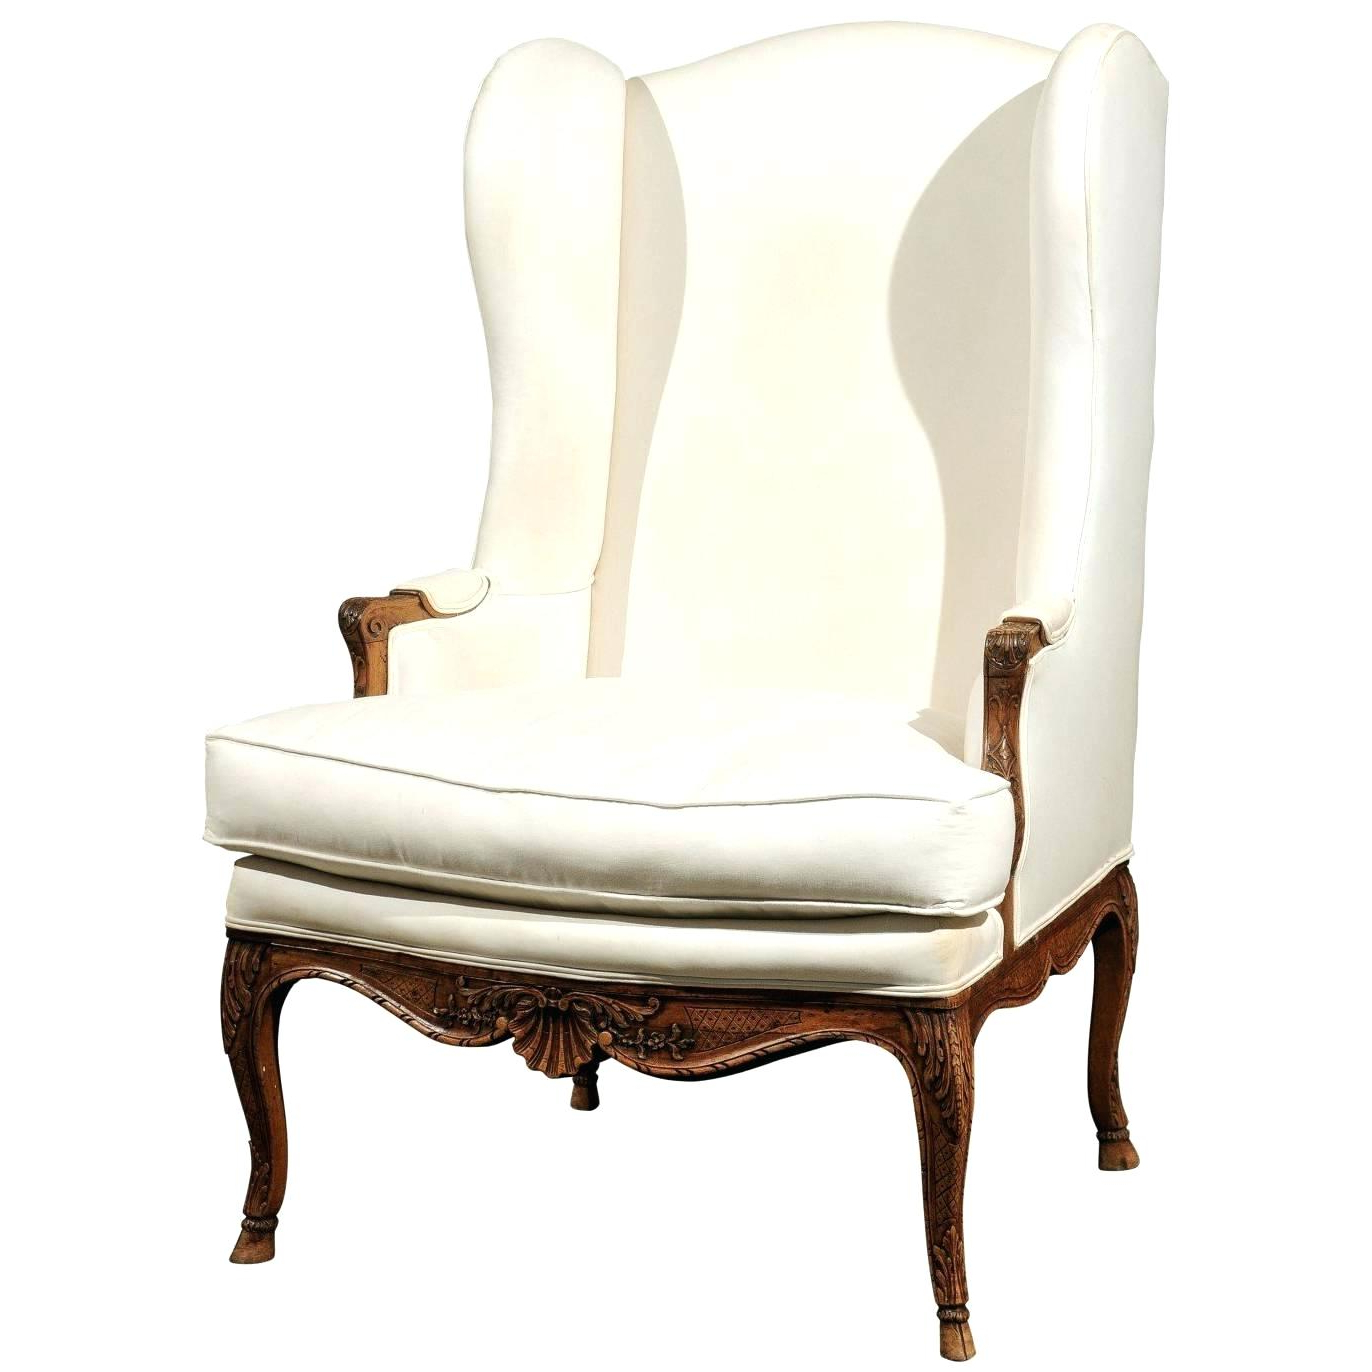 Recent Bailey Linen Flare Arm Wing Skirted Swivel Gliders In Skirted Wingback Chair Bailey Flare Arm Wing Skirted Swivel Glider (View 9 of 9)